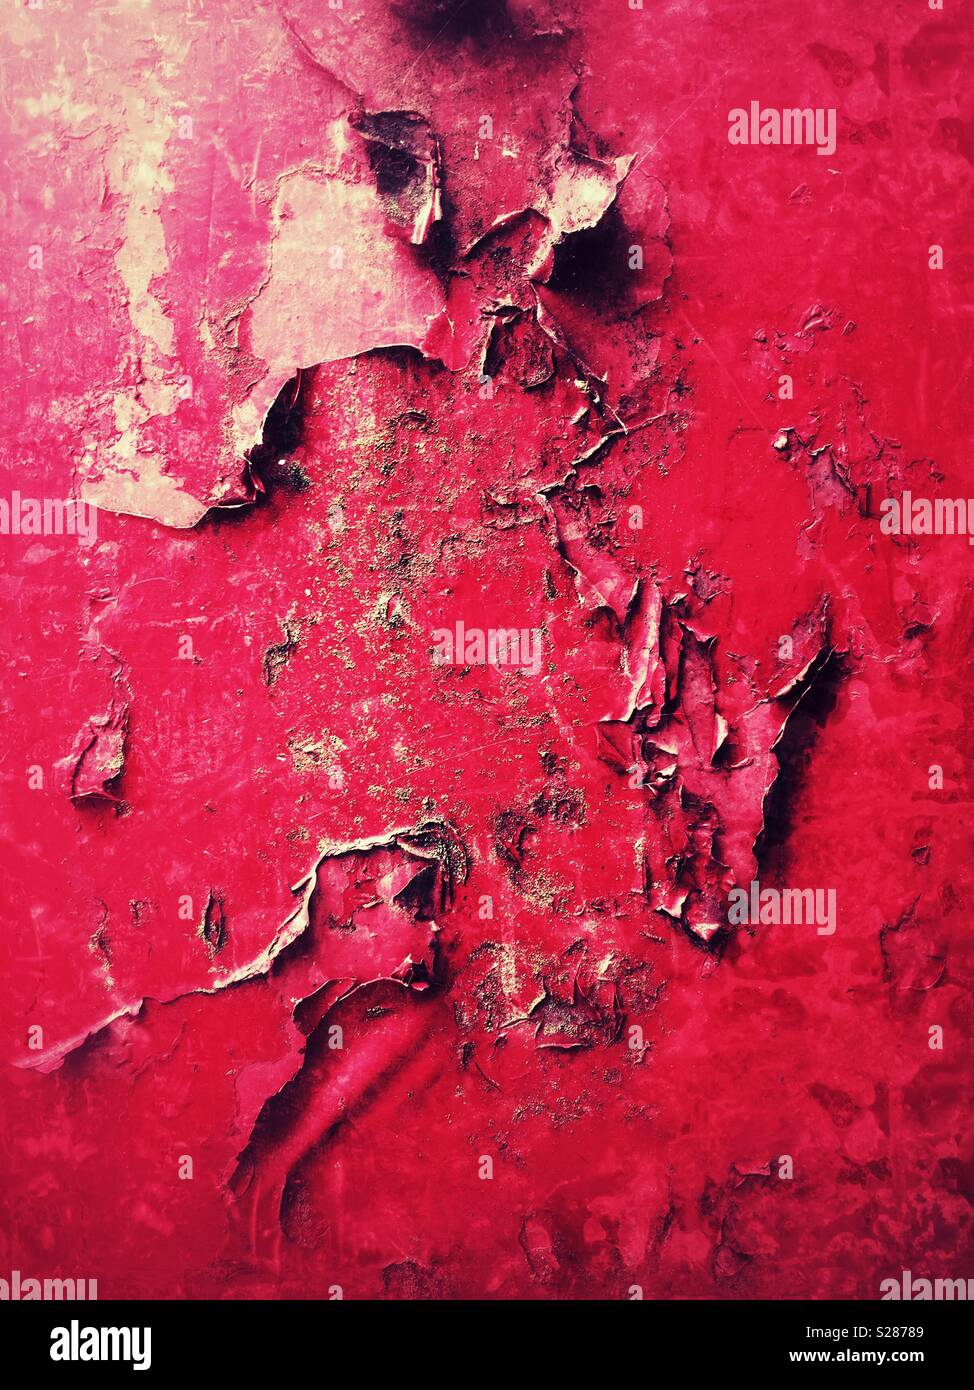 Blistered and peeling red paint on the rusty metal work - Stock Image